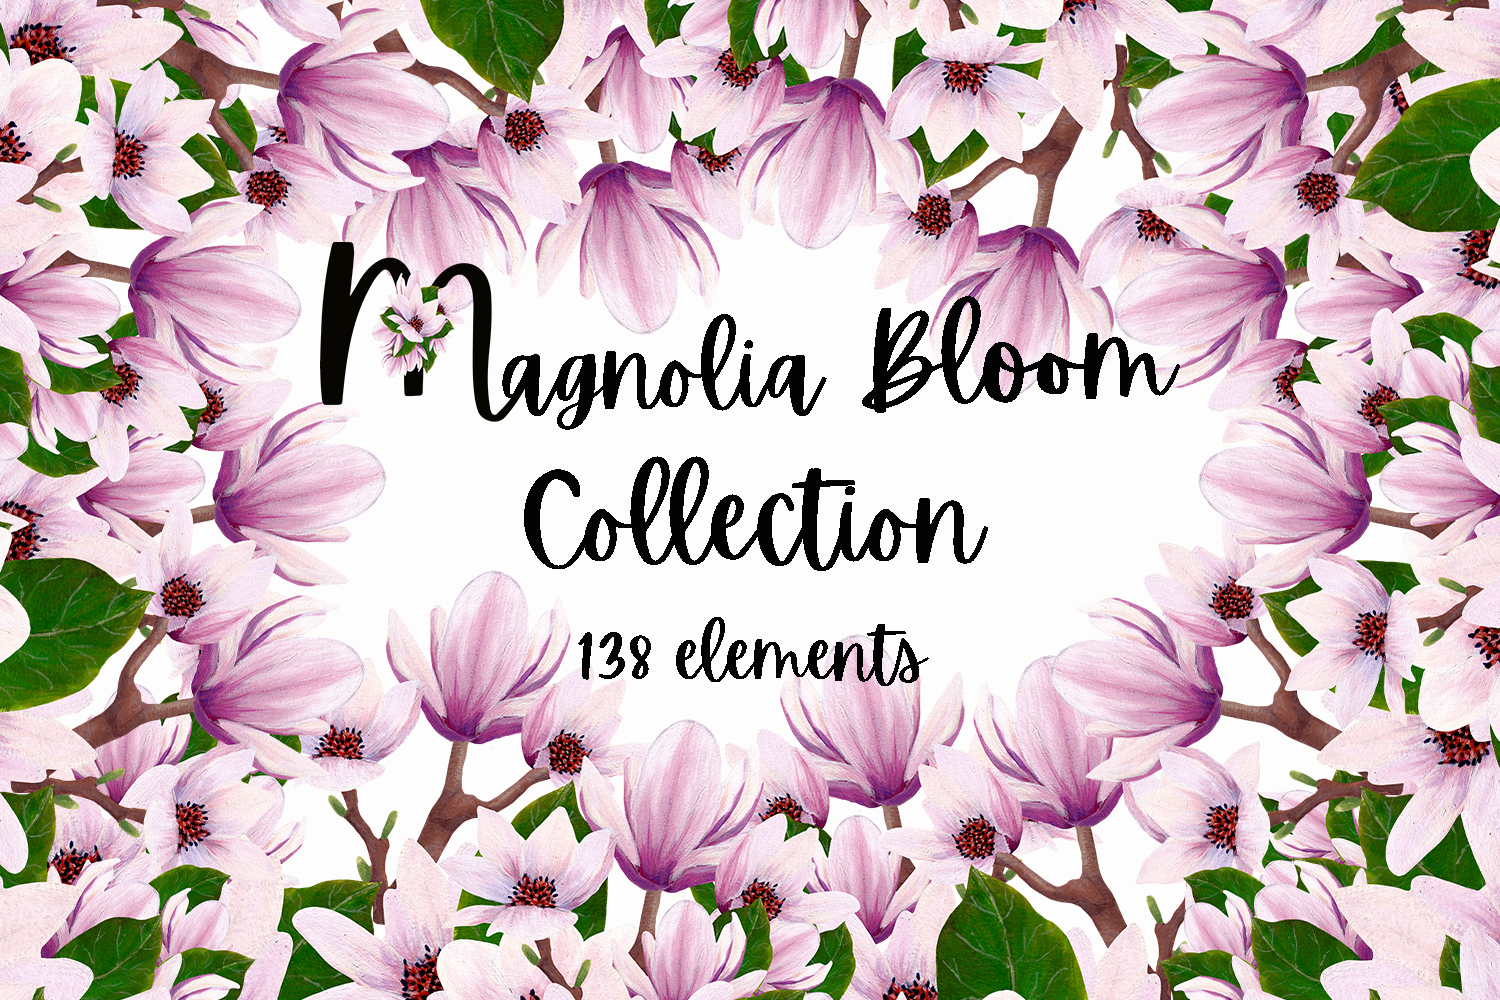 Download Free Magnolia Bloom Collection Graphic By Andreea Eremia Design for Cricut Explore, Silhouette and other cutting machines.